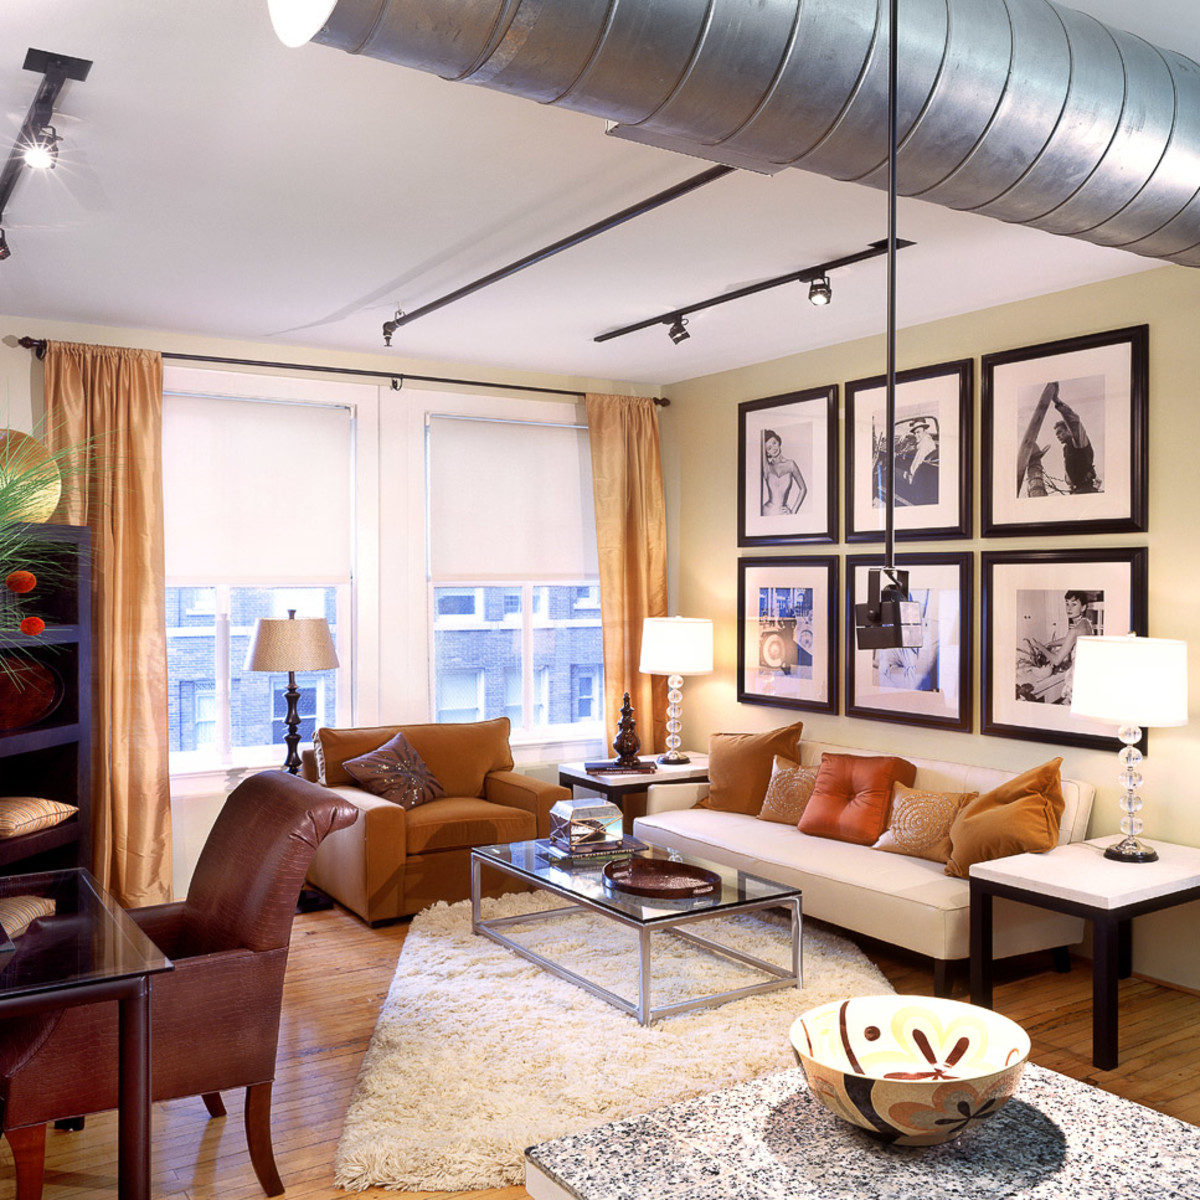 News_Redesigning Downtown_home tour_Post Rice Lofts